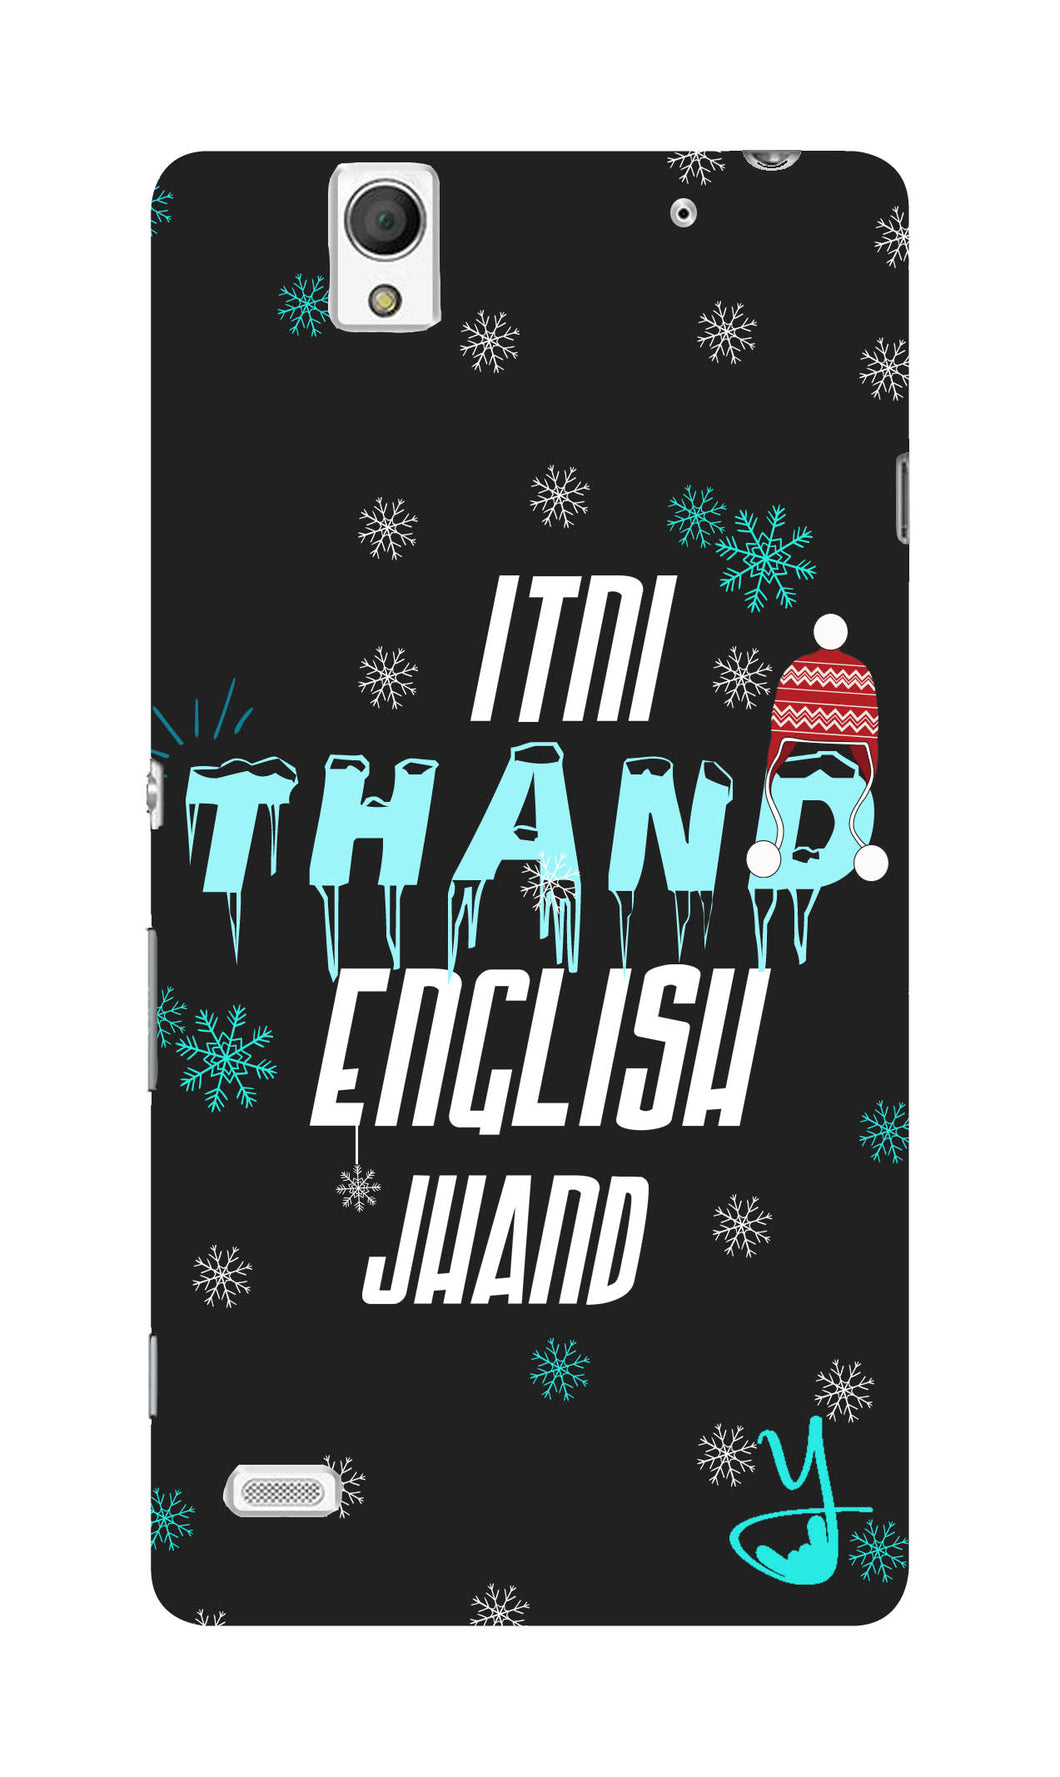 Itni Thand edition for Sony Xperia C4